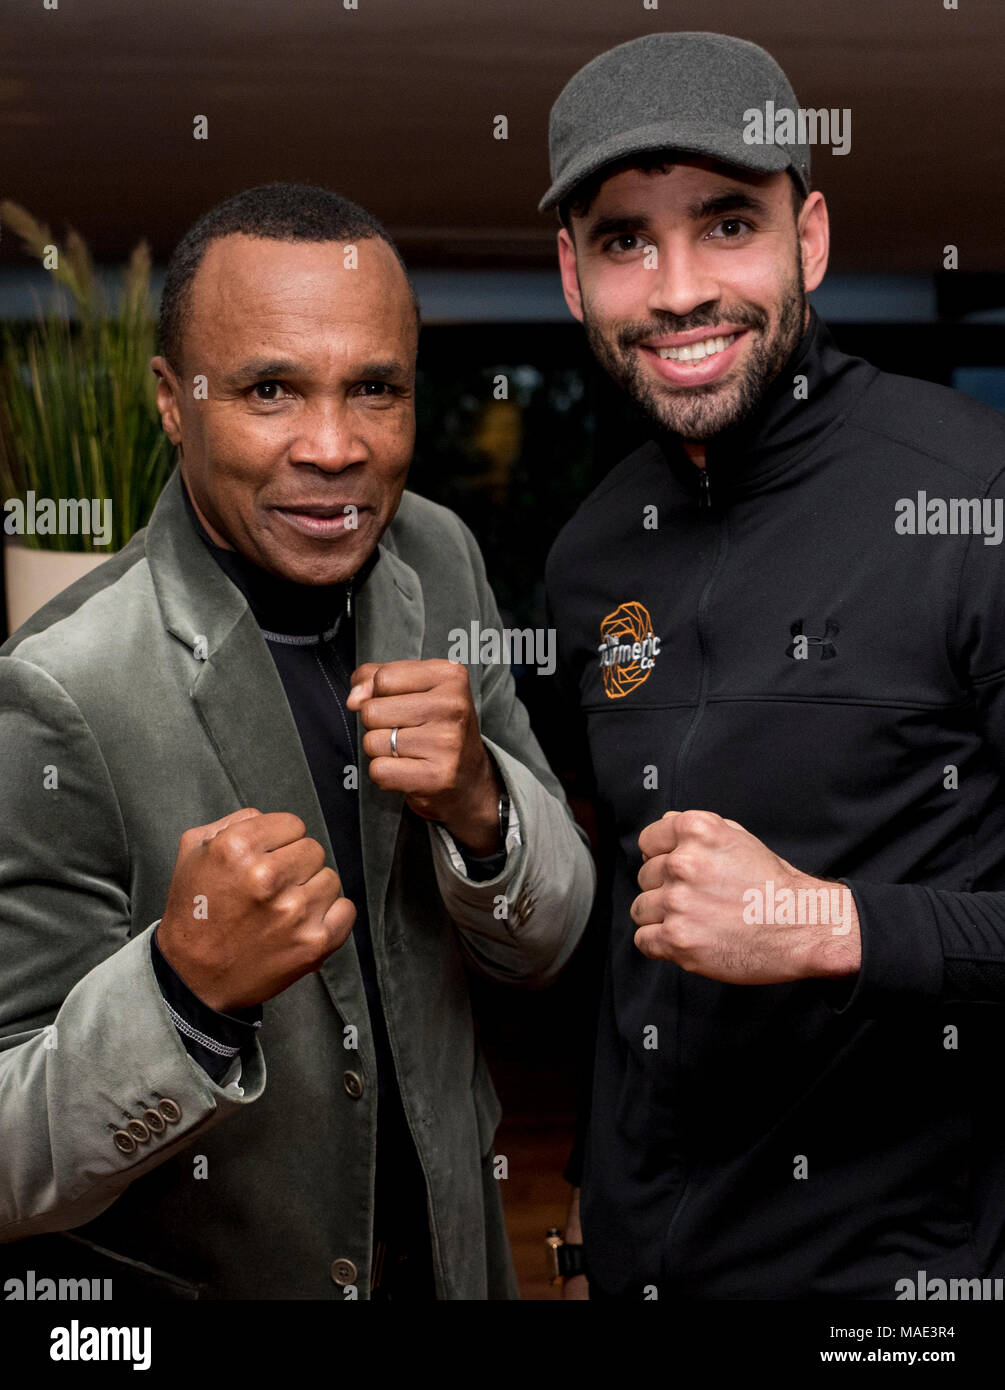 Celtic Manor Hotel, Newport, 31st March 2018: Former boxing legend Sugar Ray Leonard poses for a photo with West Bromwich Albion and Wales footballer Hal Robson Kanu at the Celtic Manor in Newport Credit: Andrew Dowling/Influential Photography/Alamy Live News - Stock Image